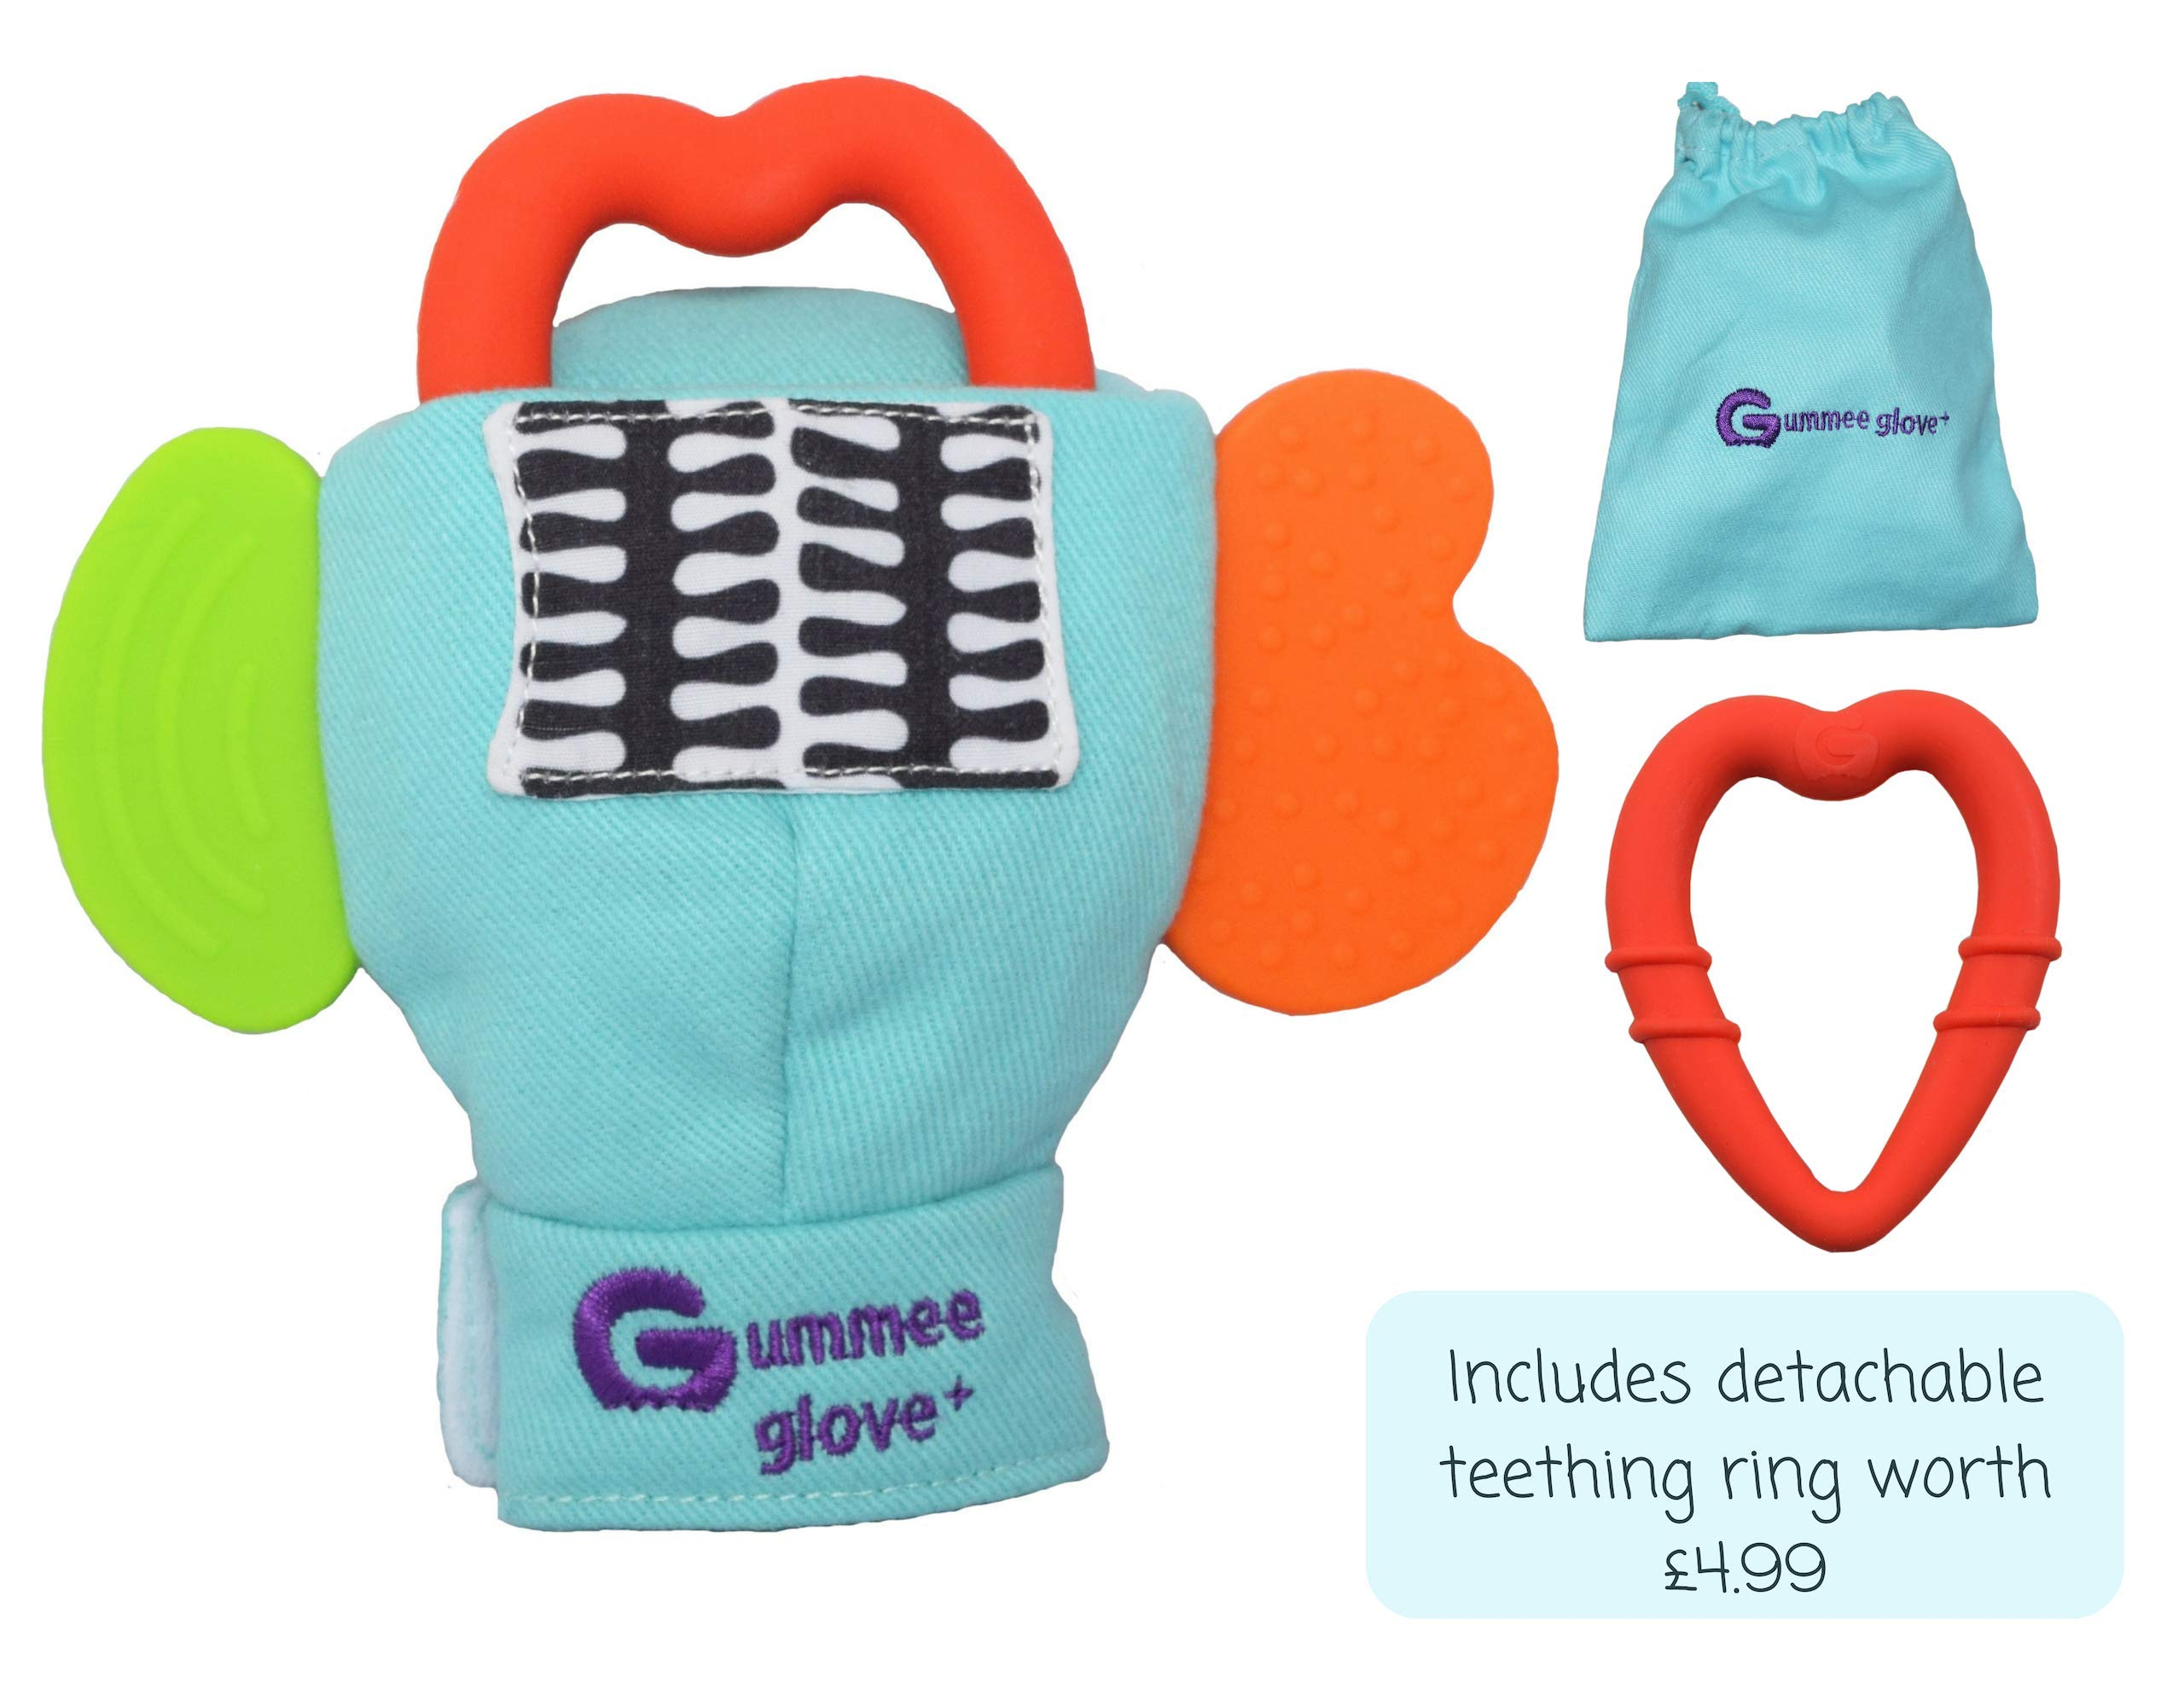 Gummee Glove Baby Teething Mitten Large 6 Months + Premium Quality Detachable Teether Ring and Travel Bag - Turquoise - Undroppable - Soothe Babies Painful Gums Naturally by Gummee